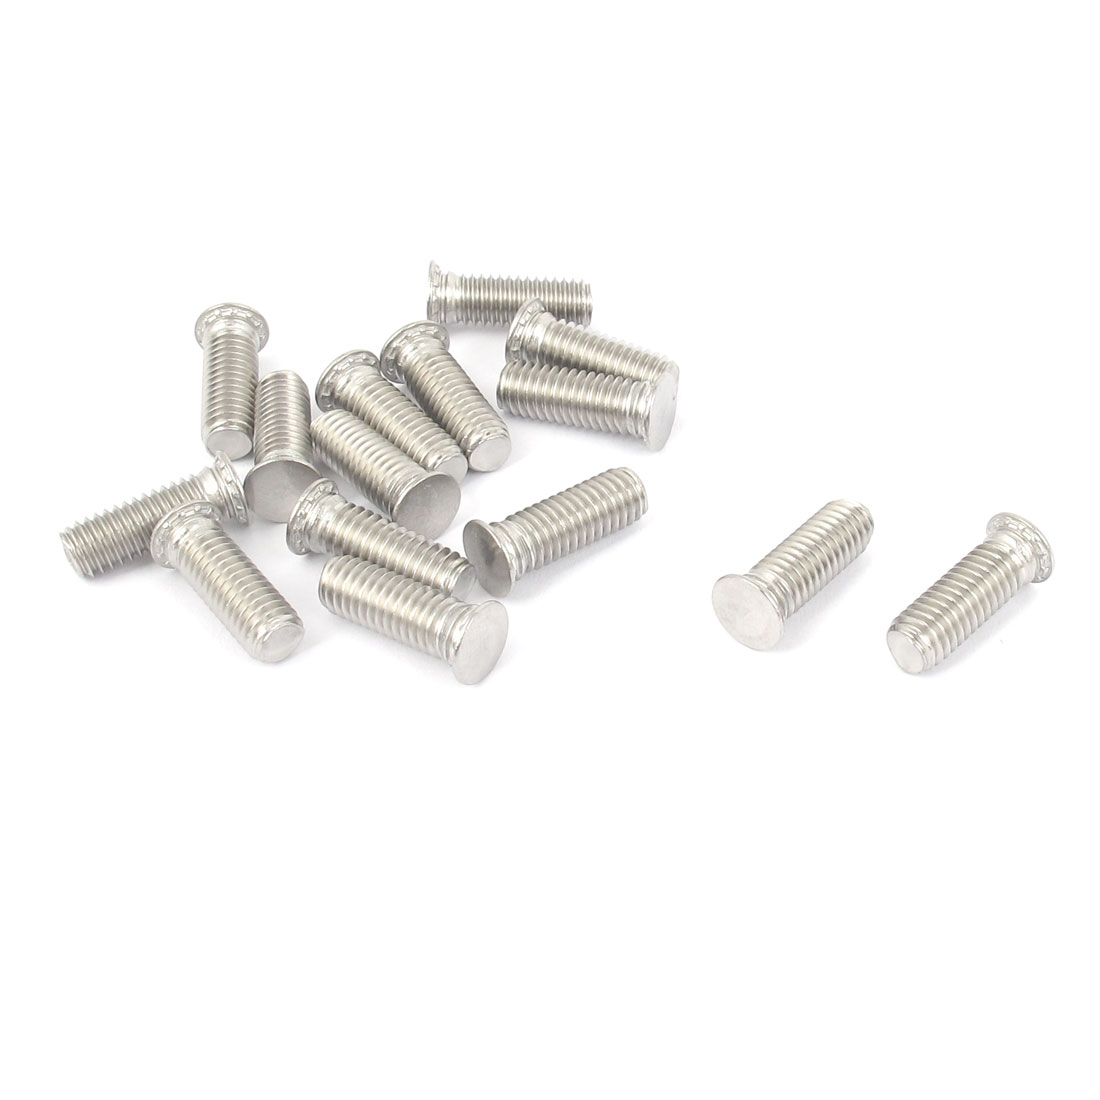 M6x18mm Flush Head Stainless Steel Self Clinching Threaded Studs Fastener 15pcs